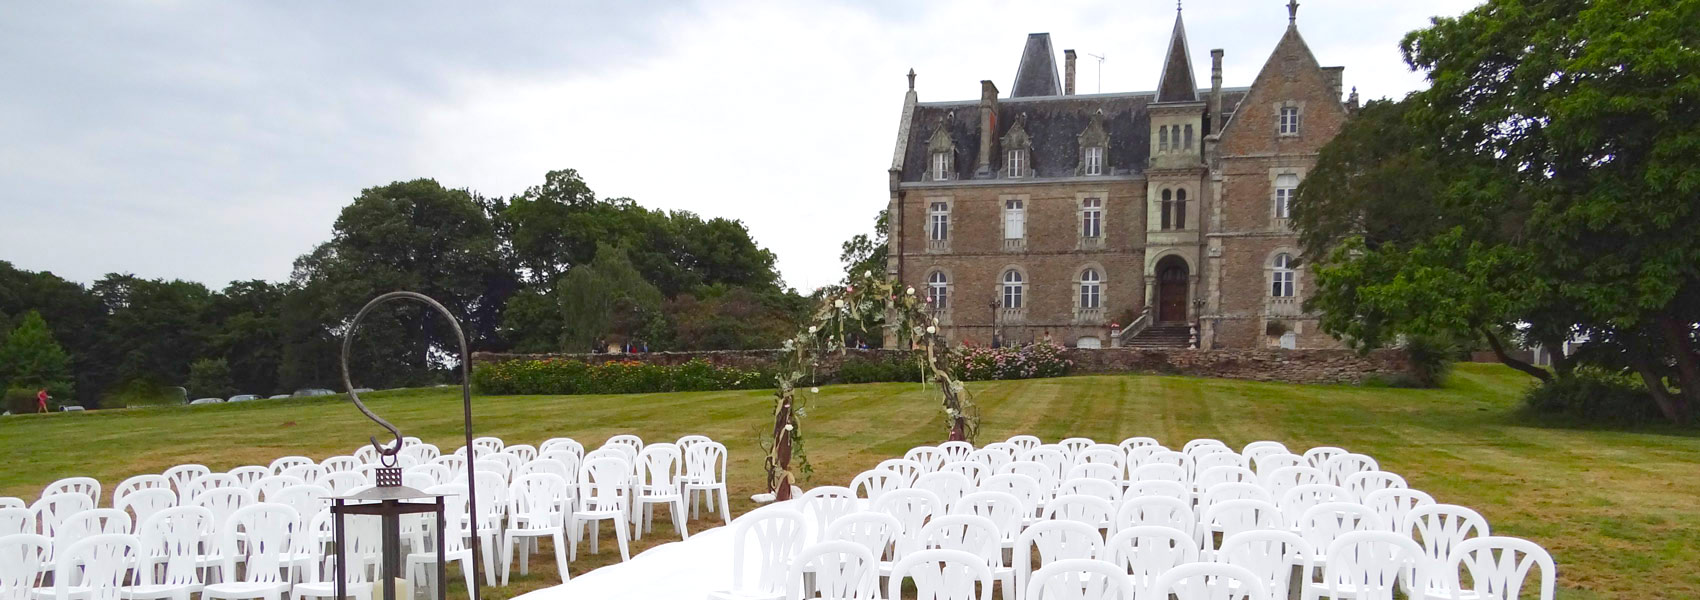 Wedding at the Castle, château du deffay